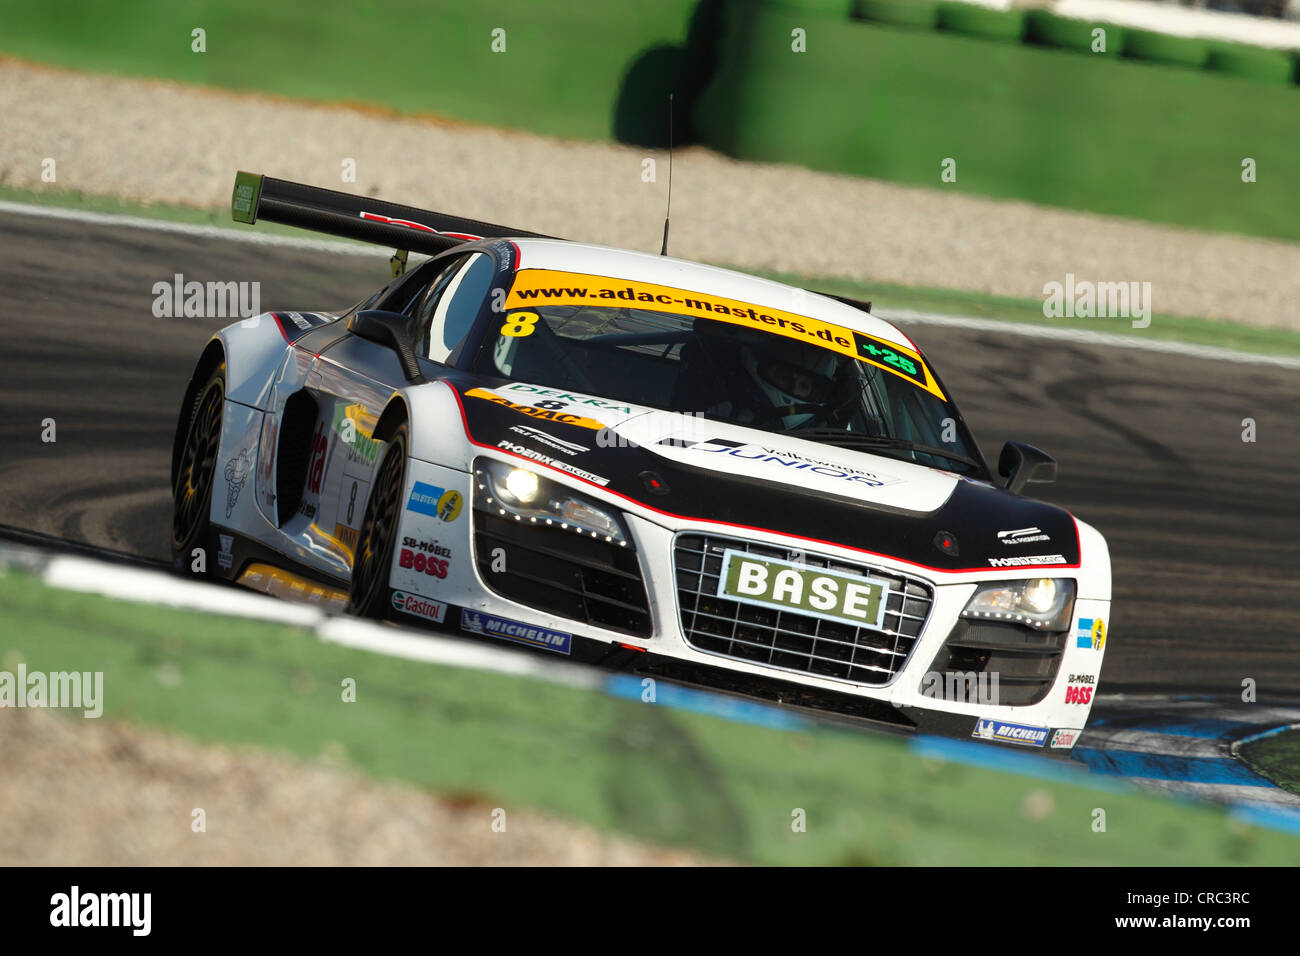 Audi R8 GT LMS Race Car In Action At The Hockenheimring Race Track,  Baden Wuerttemberg, Germany, Europe